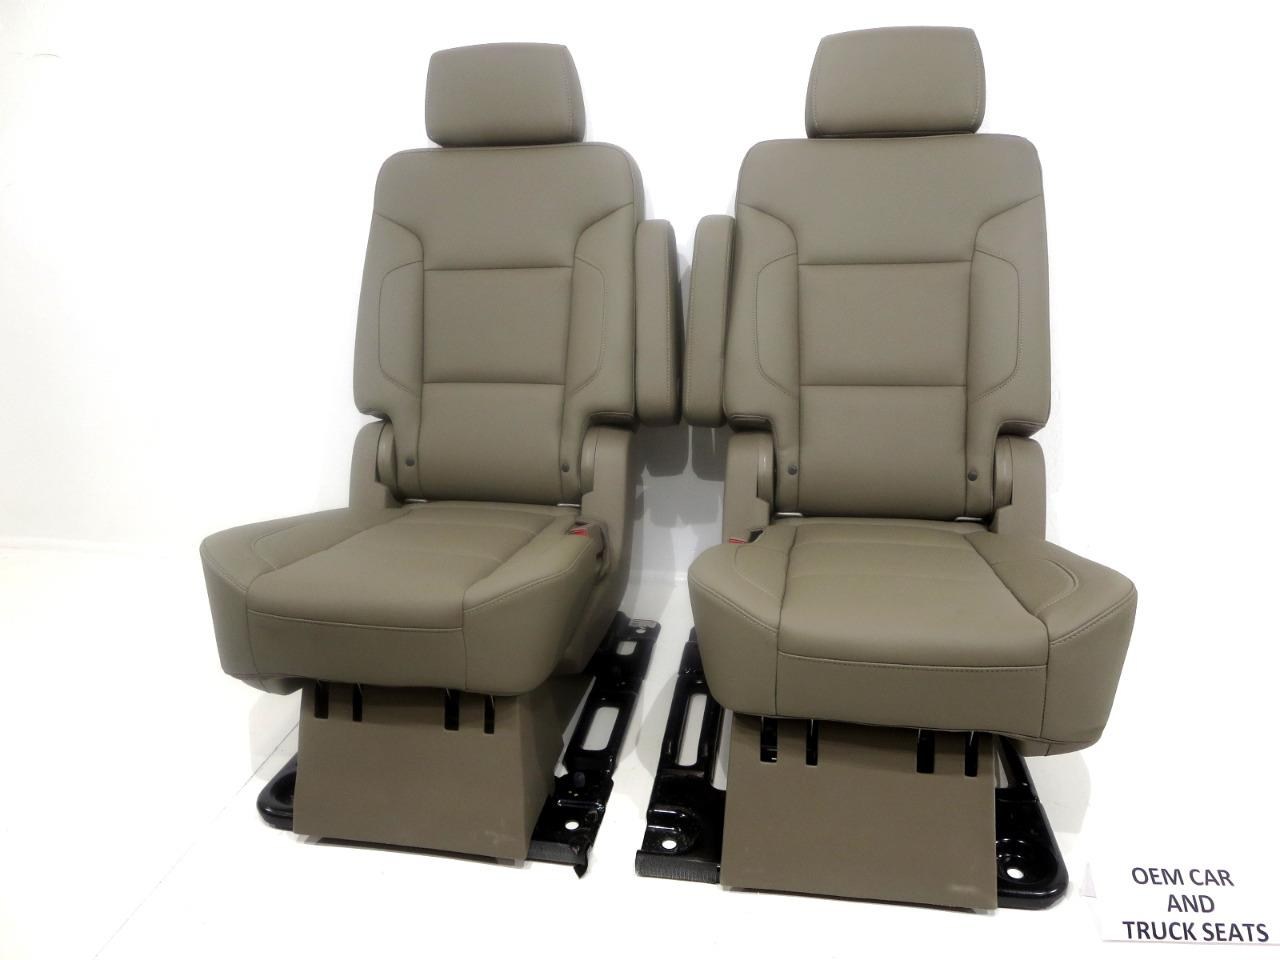 Awe Inspiring Gm Suburban Yukon Xl Oem Leather Rear Bucket Seats Second Row 2015 2016 2017 Ocoug Best Dining Table And Chair Ideas Images Ocougorg